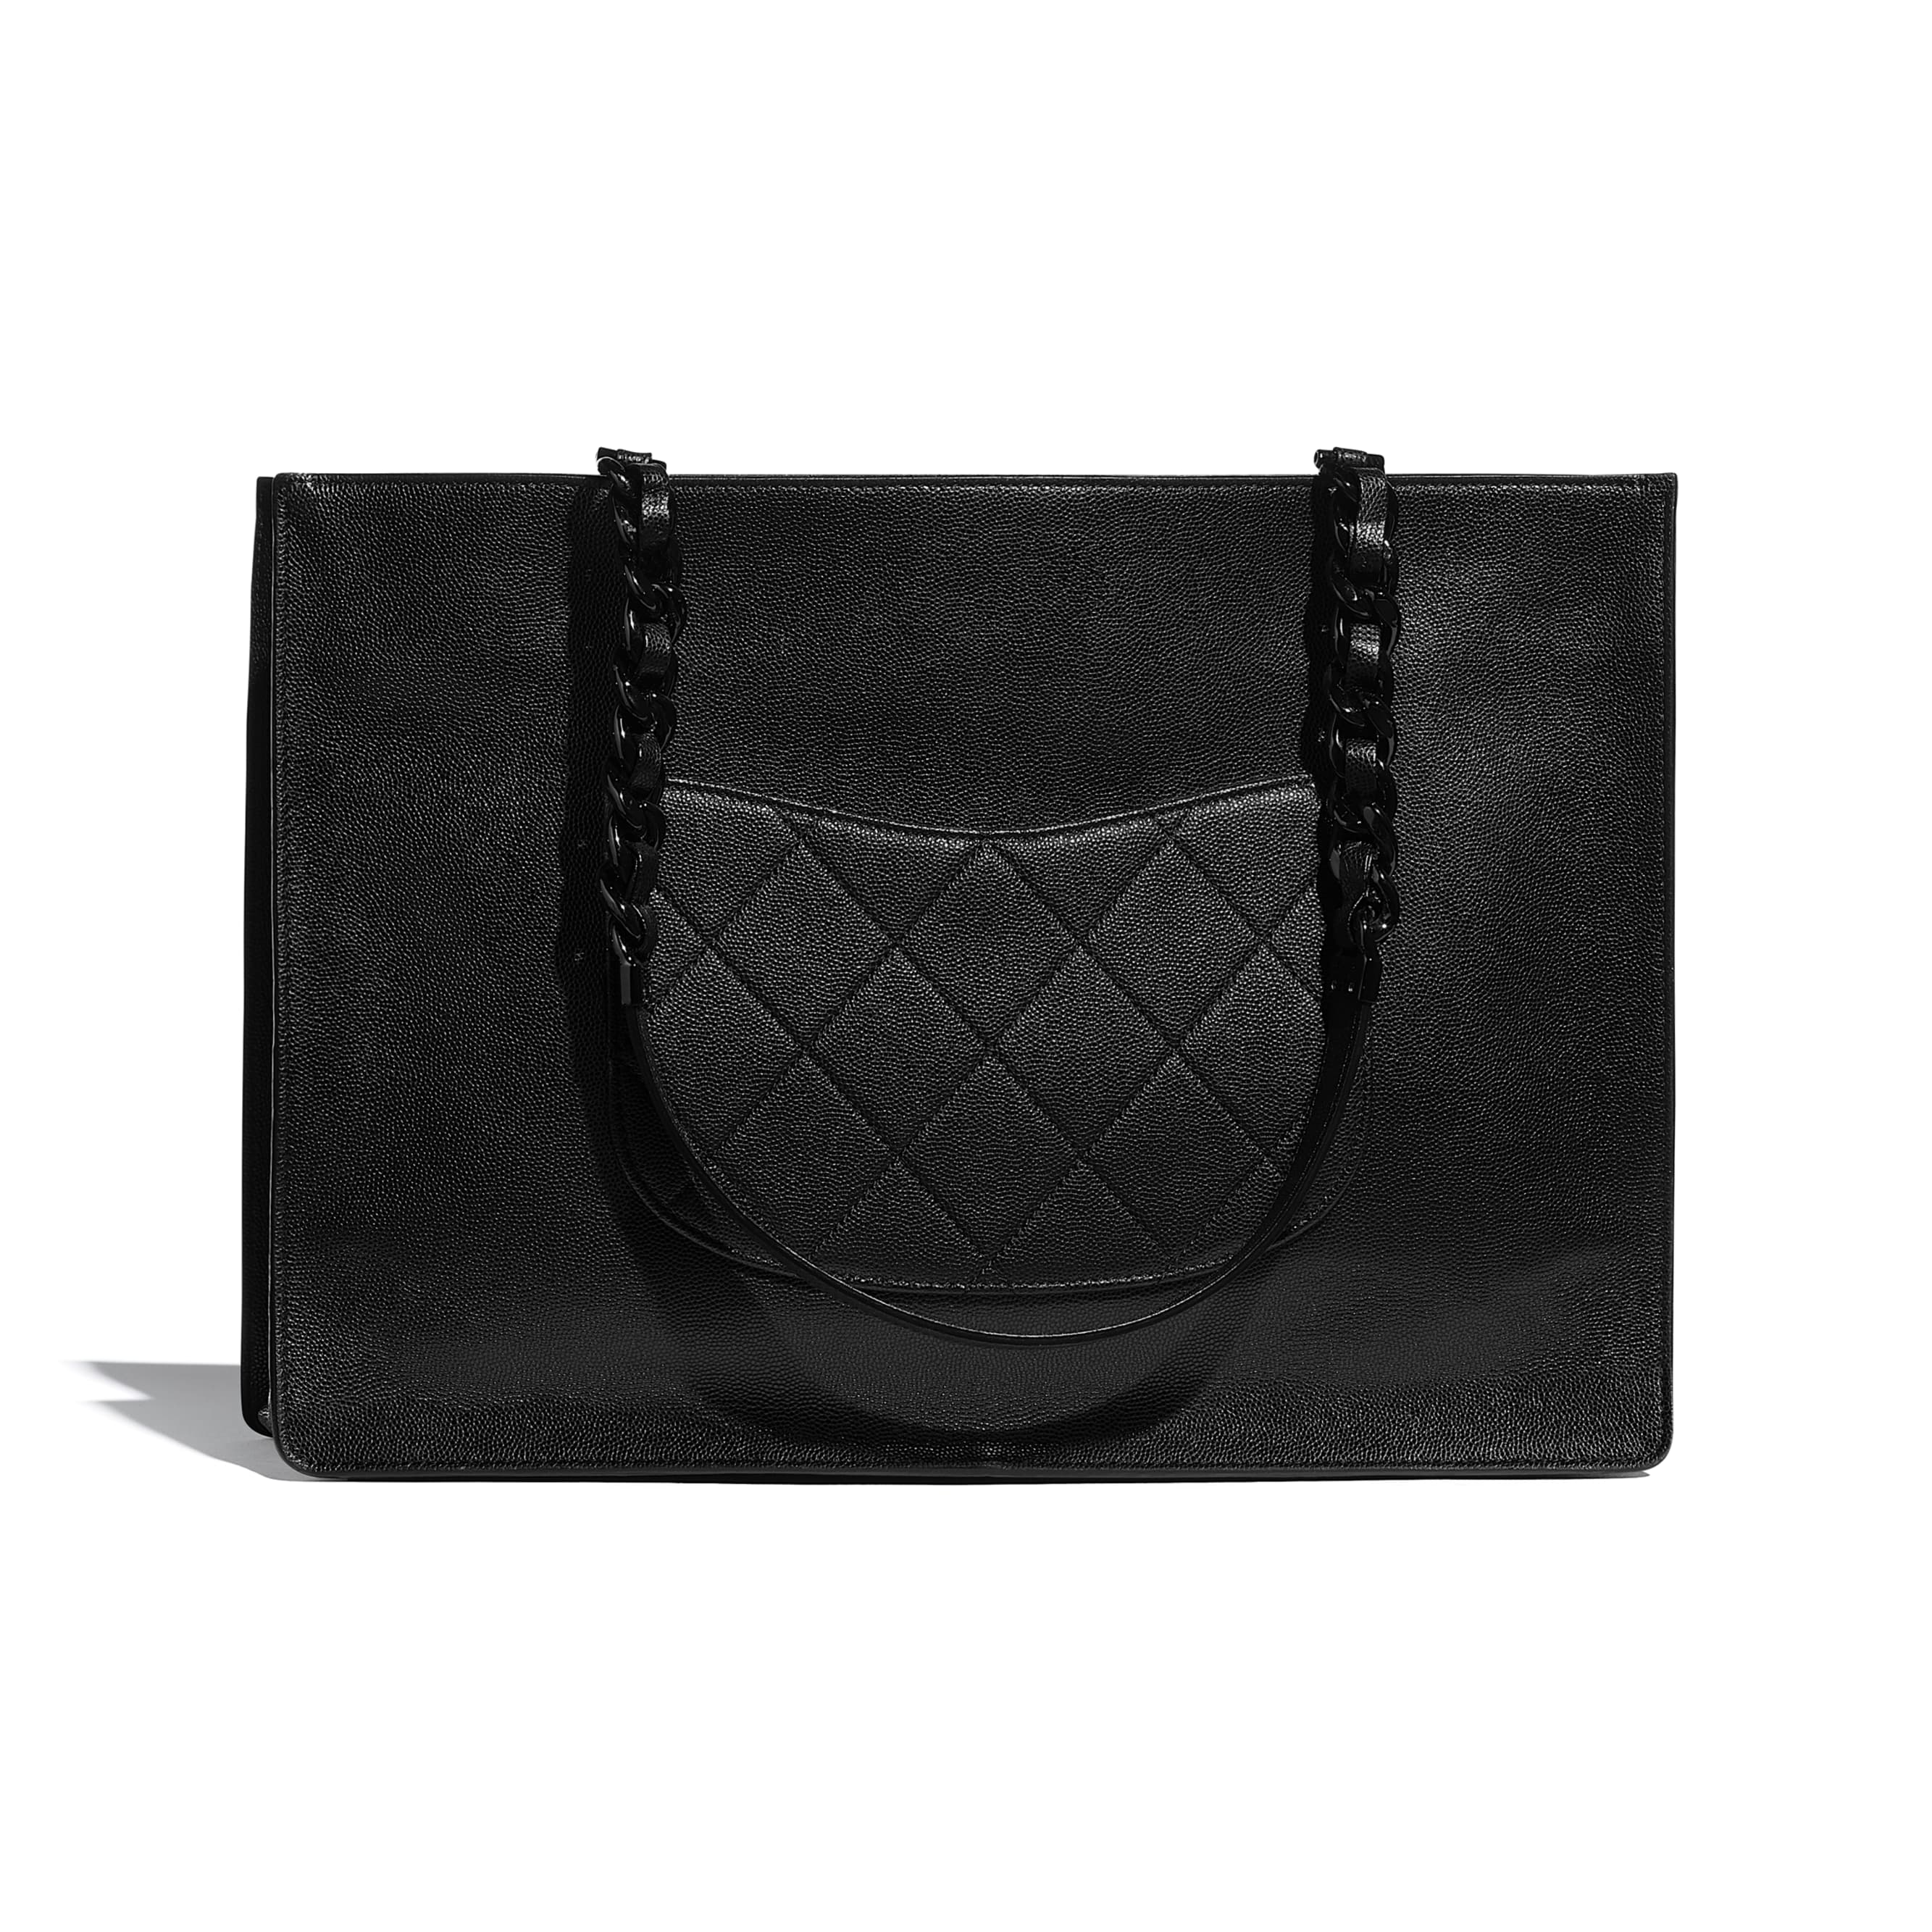 Large Tote - Black - Grained Calfskin & Lacquered Metal - CHANEL - Alternative view - see standard sized version